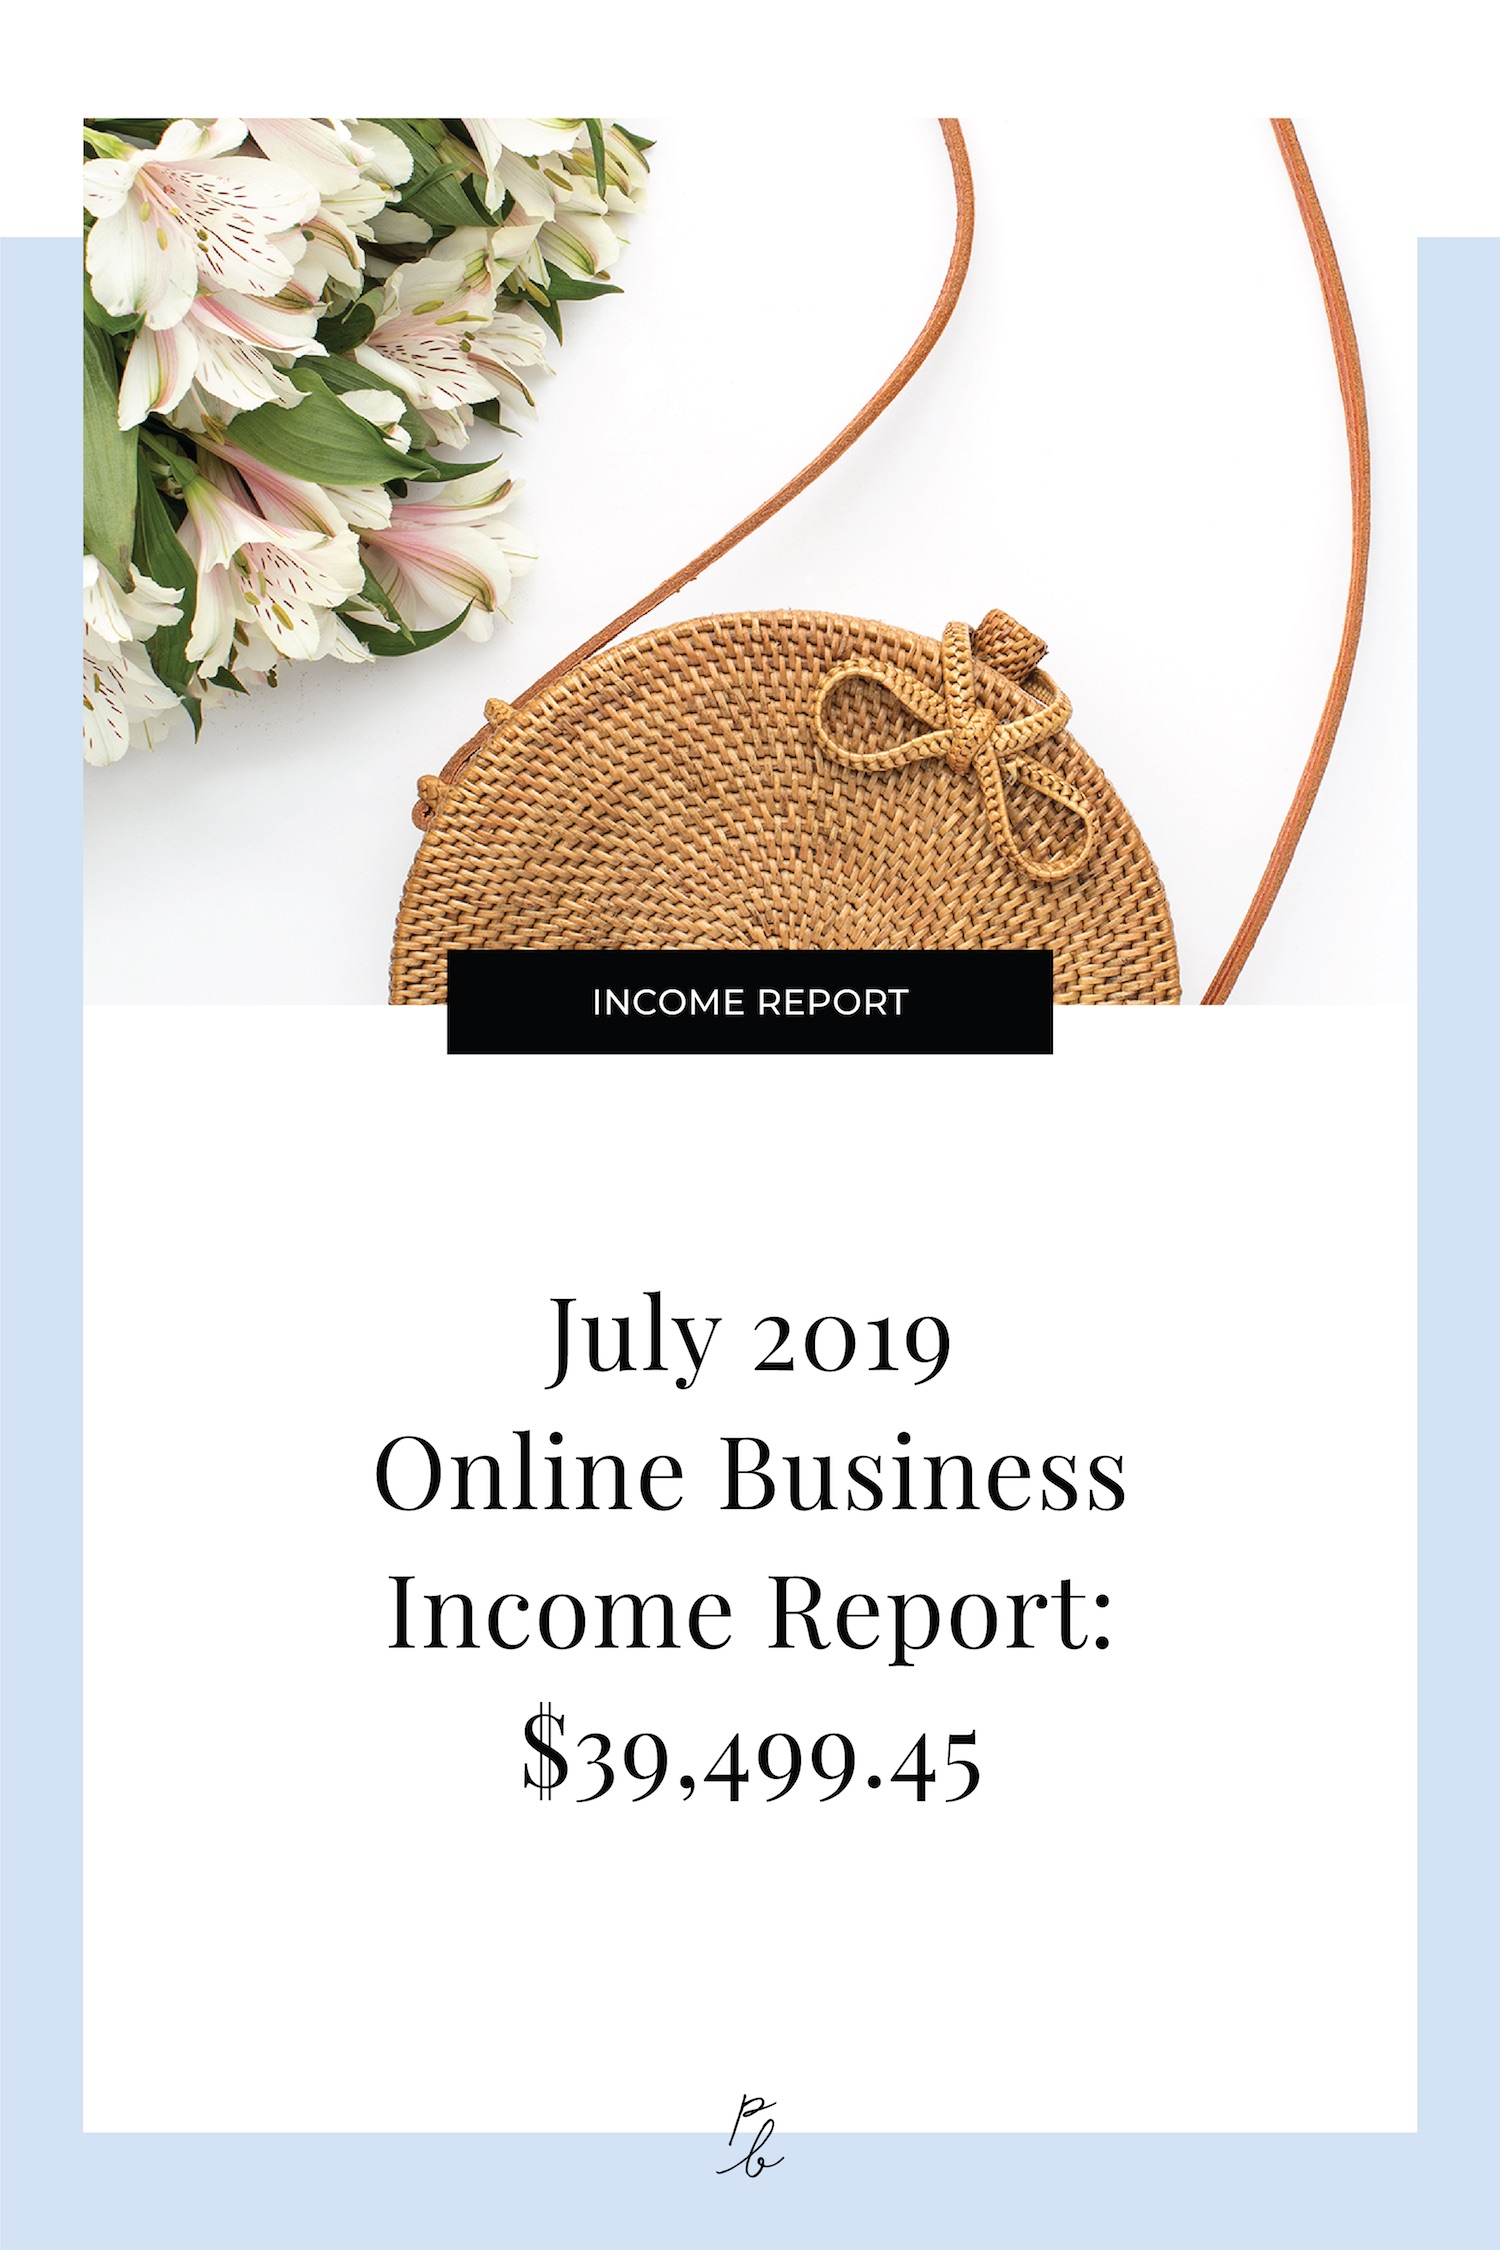 July 2019 Online Business Income Report-68.jpeg